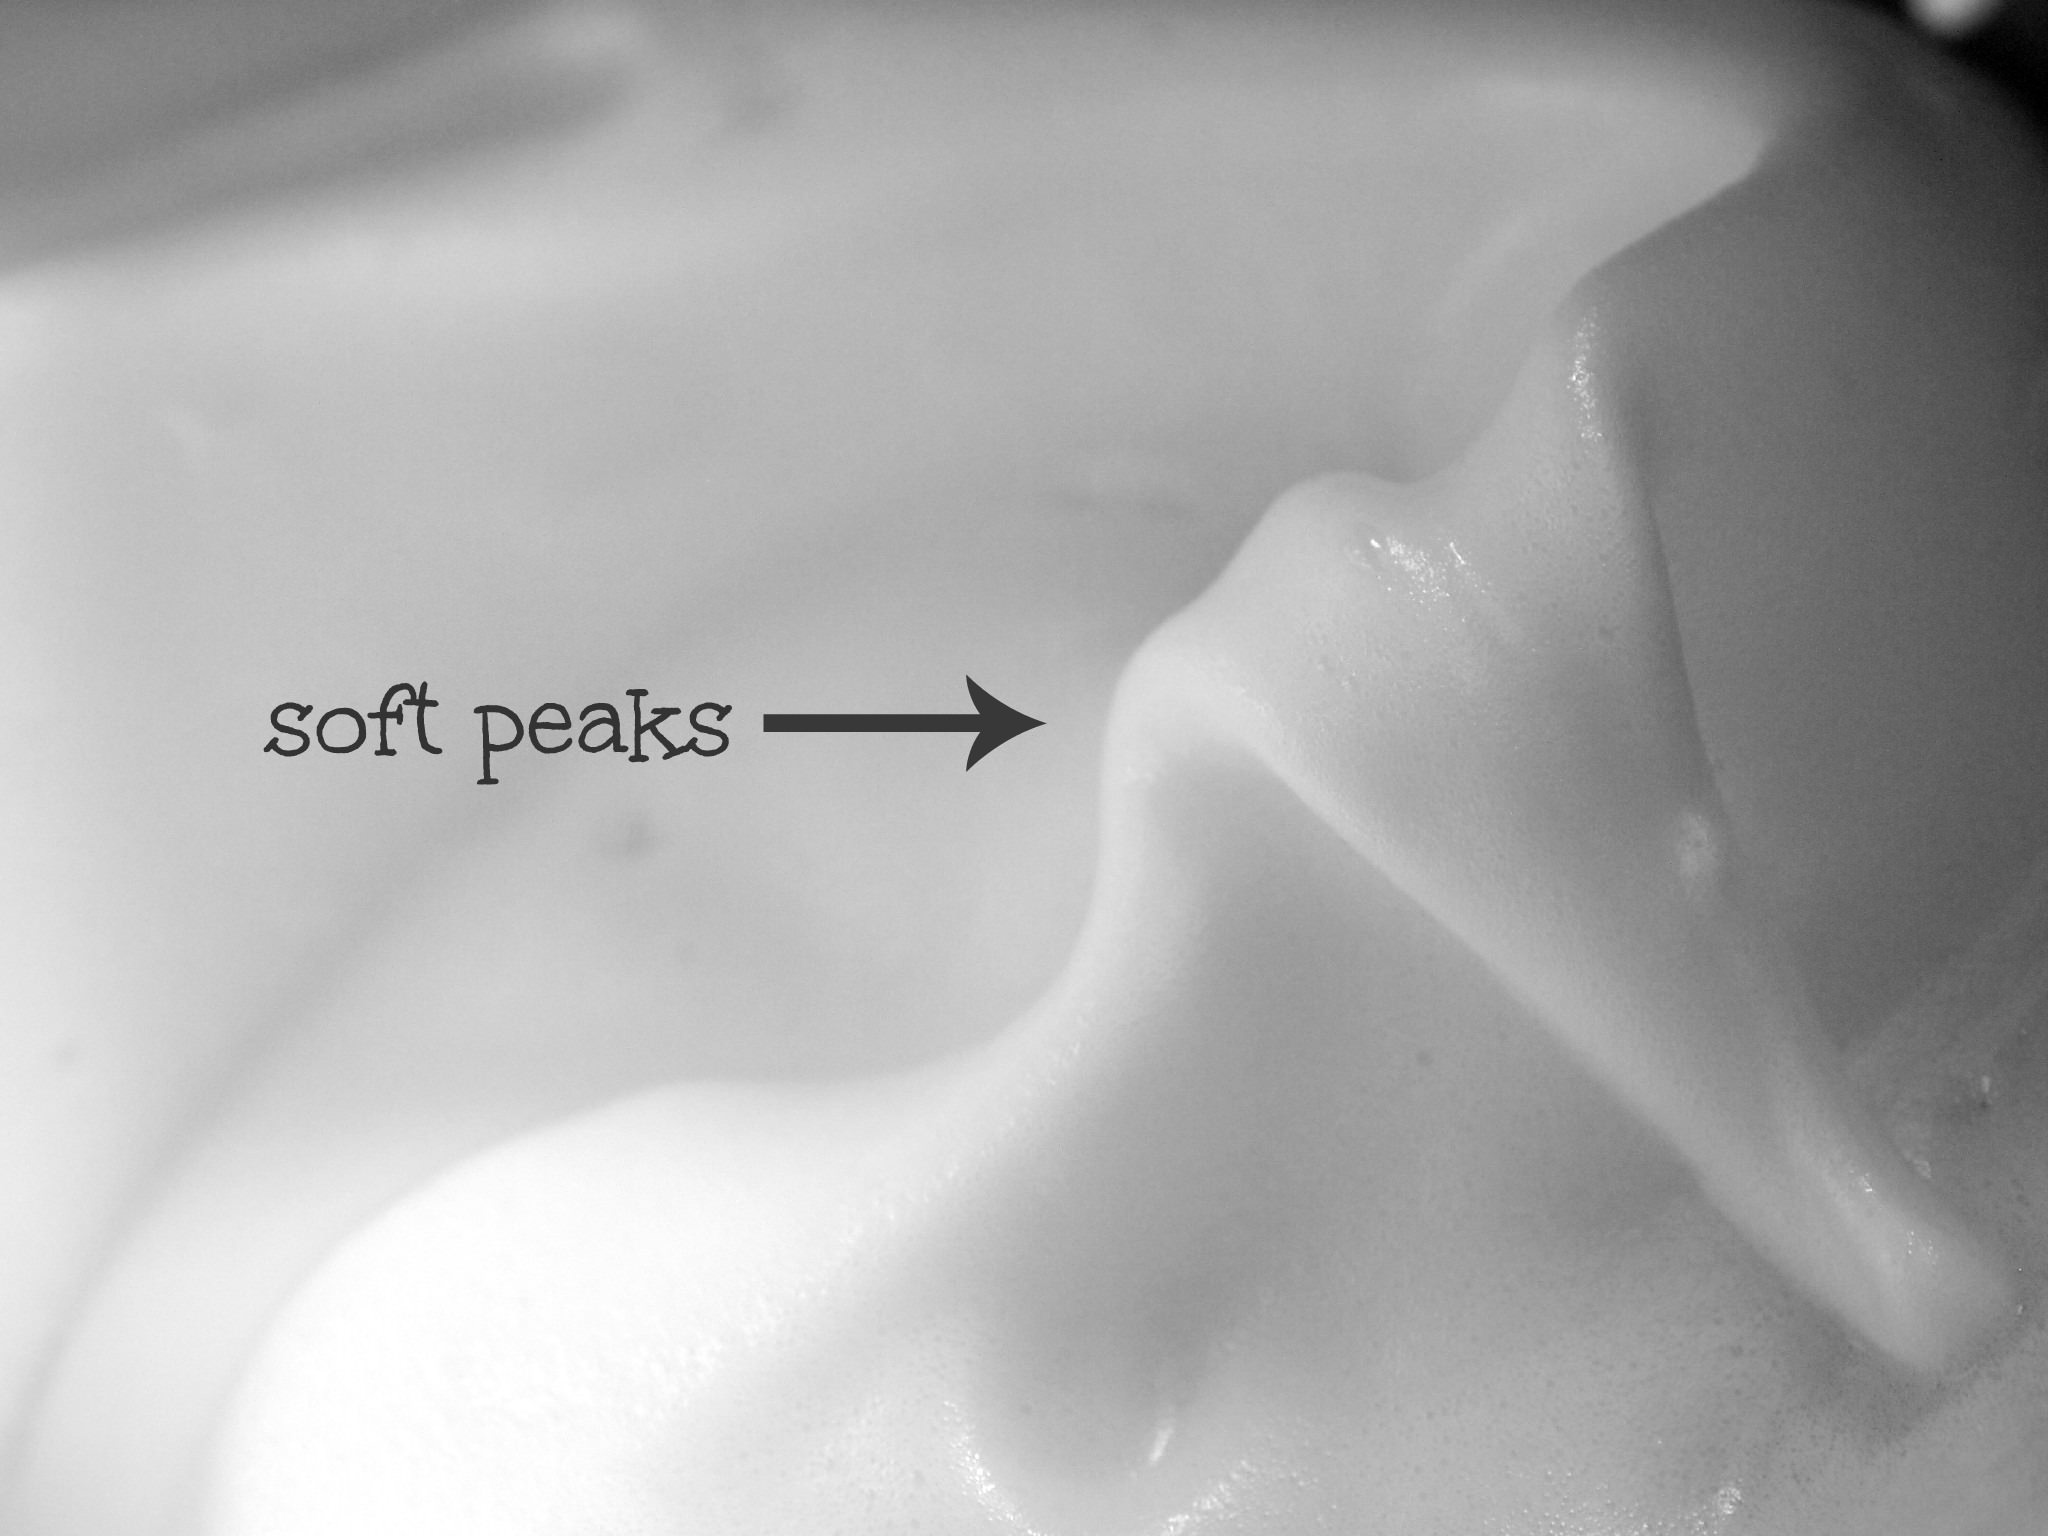 soft peaked egg whites